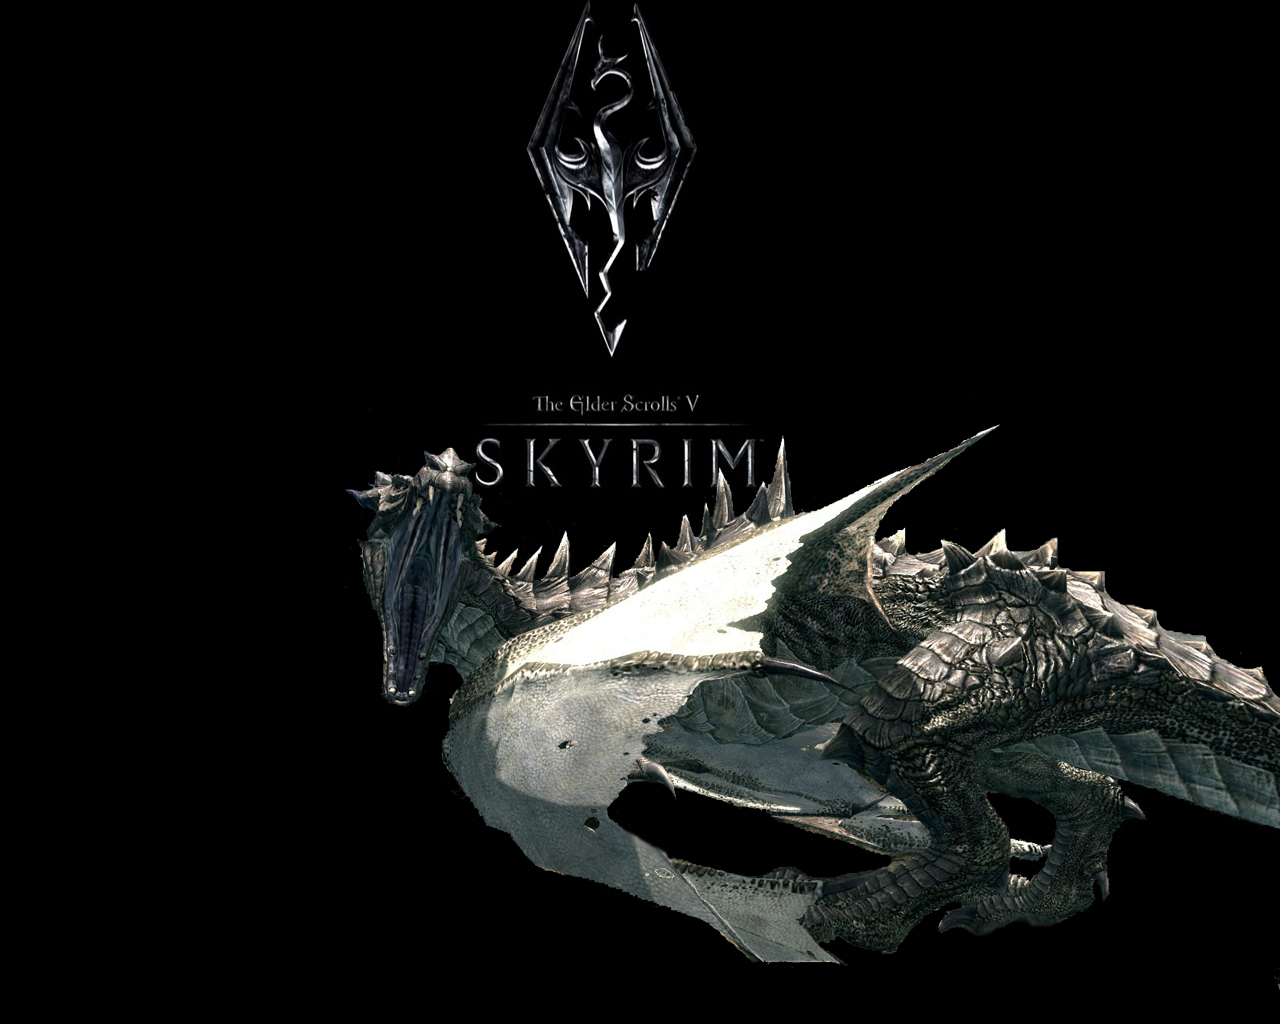 the elder scrolls v: skyrim wallpaperantonioz31 on deviantart